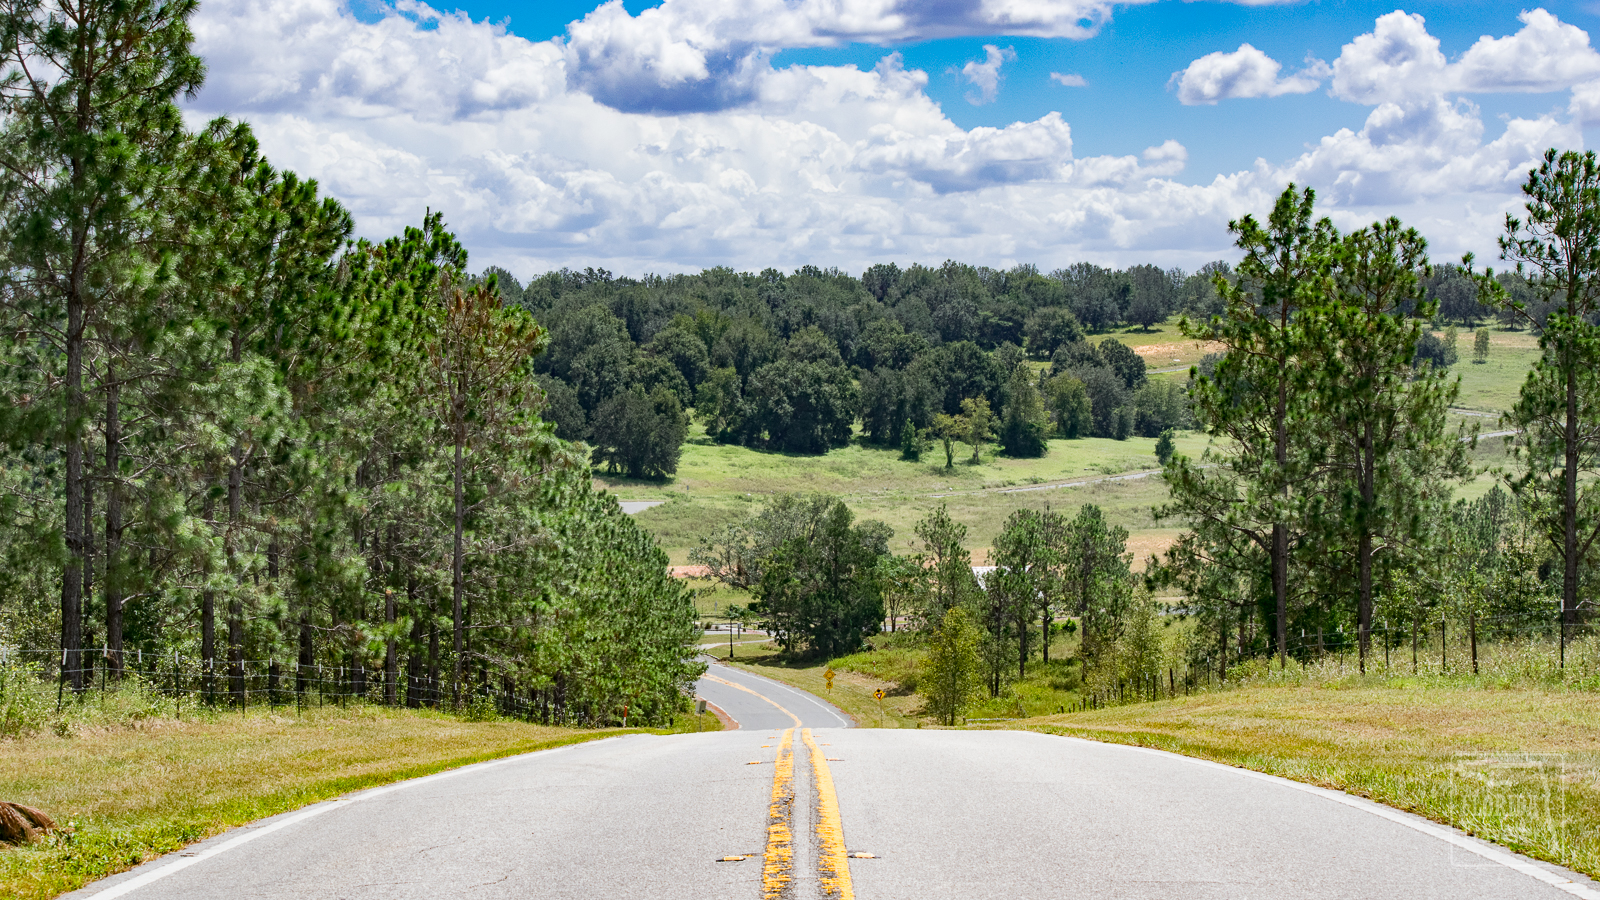 Road Trip Florida S Green Mountain Scenic Byway